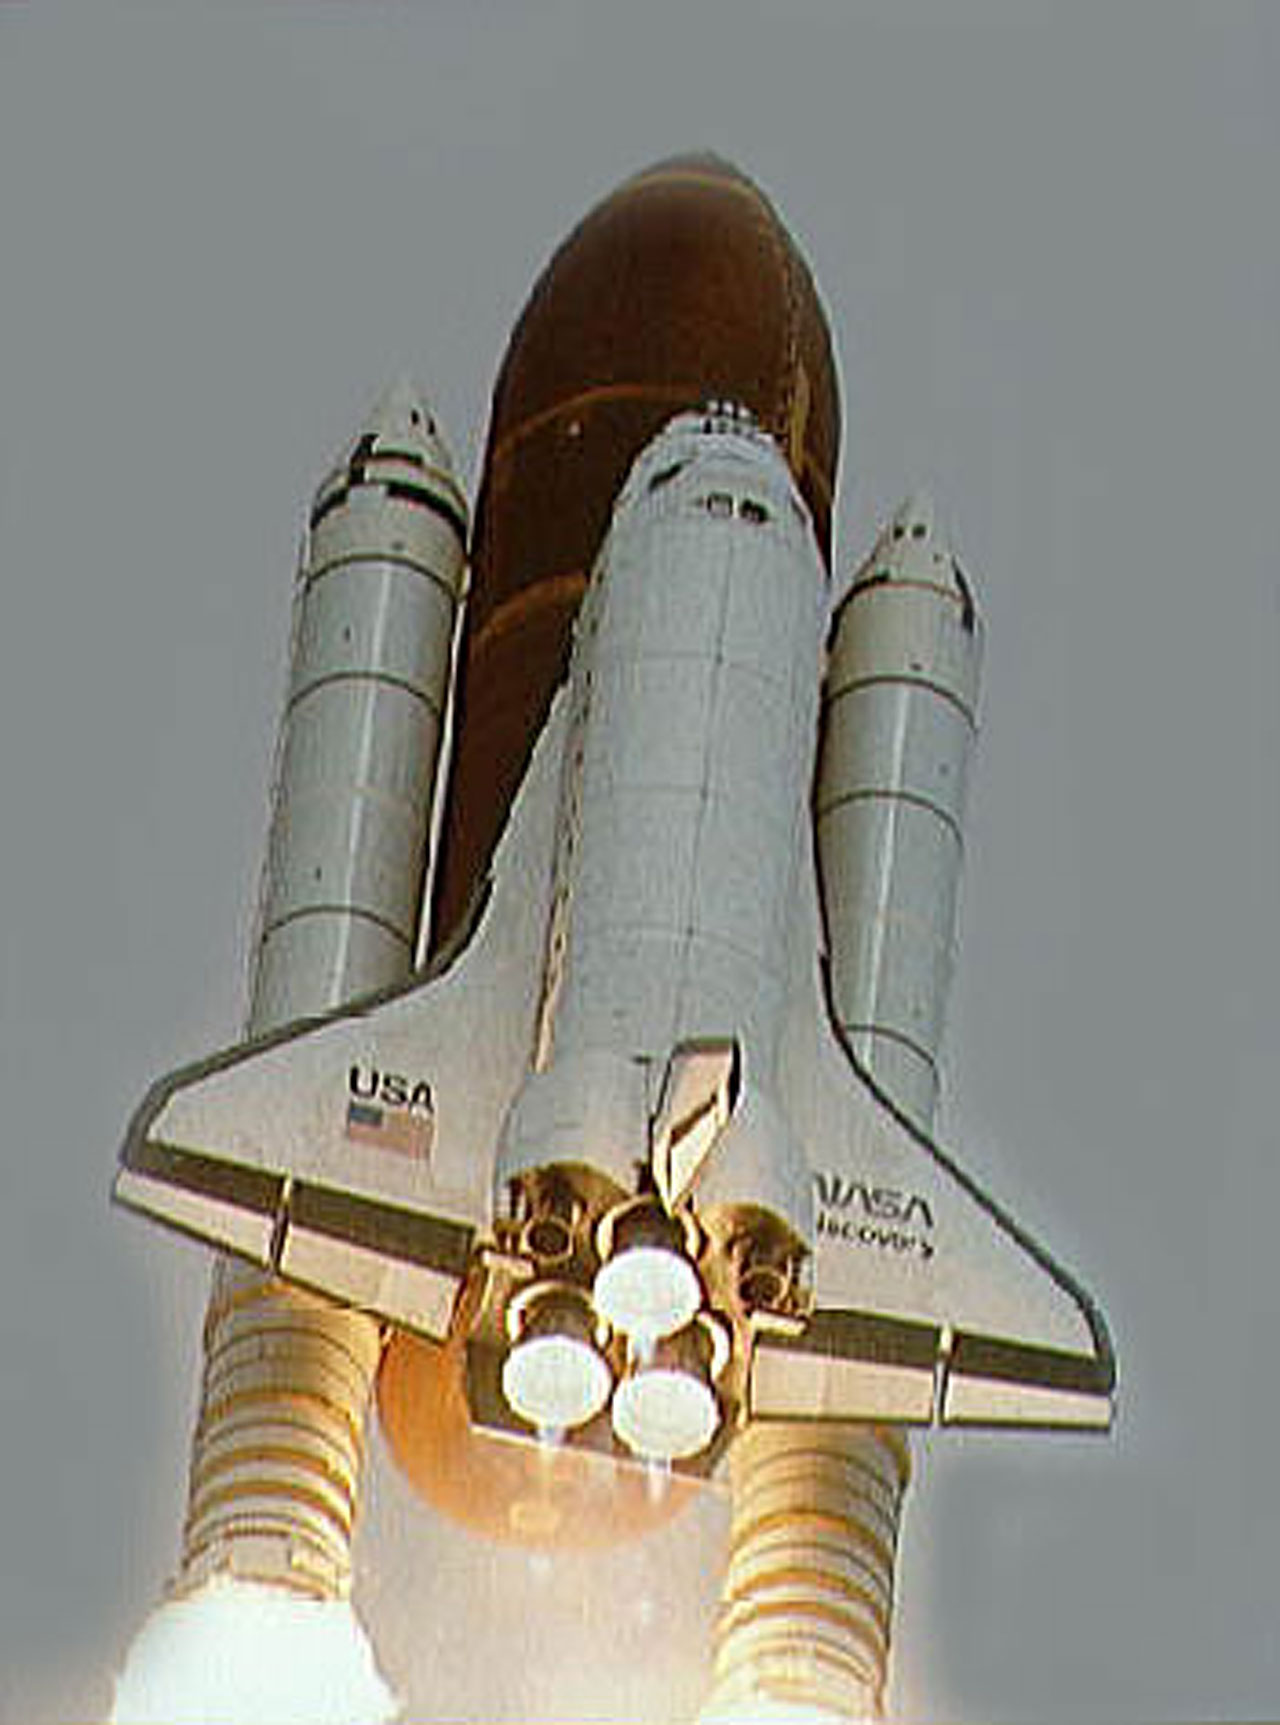 Schuttle Discovery (STS-31)